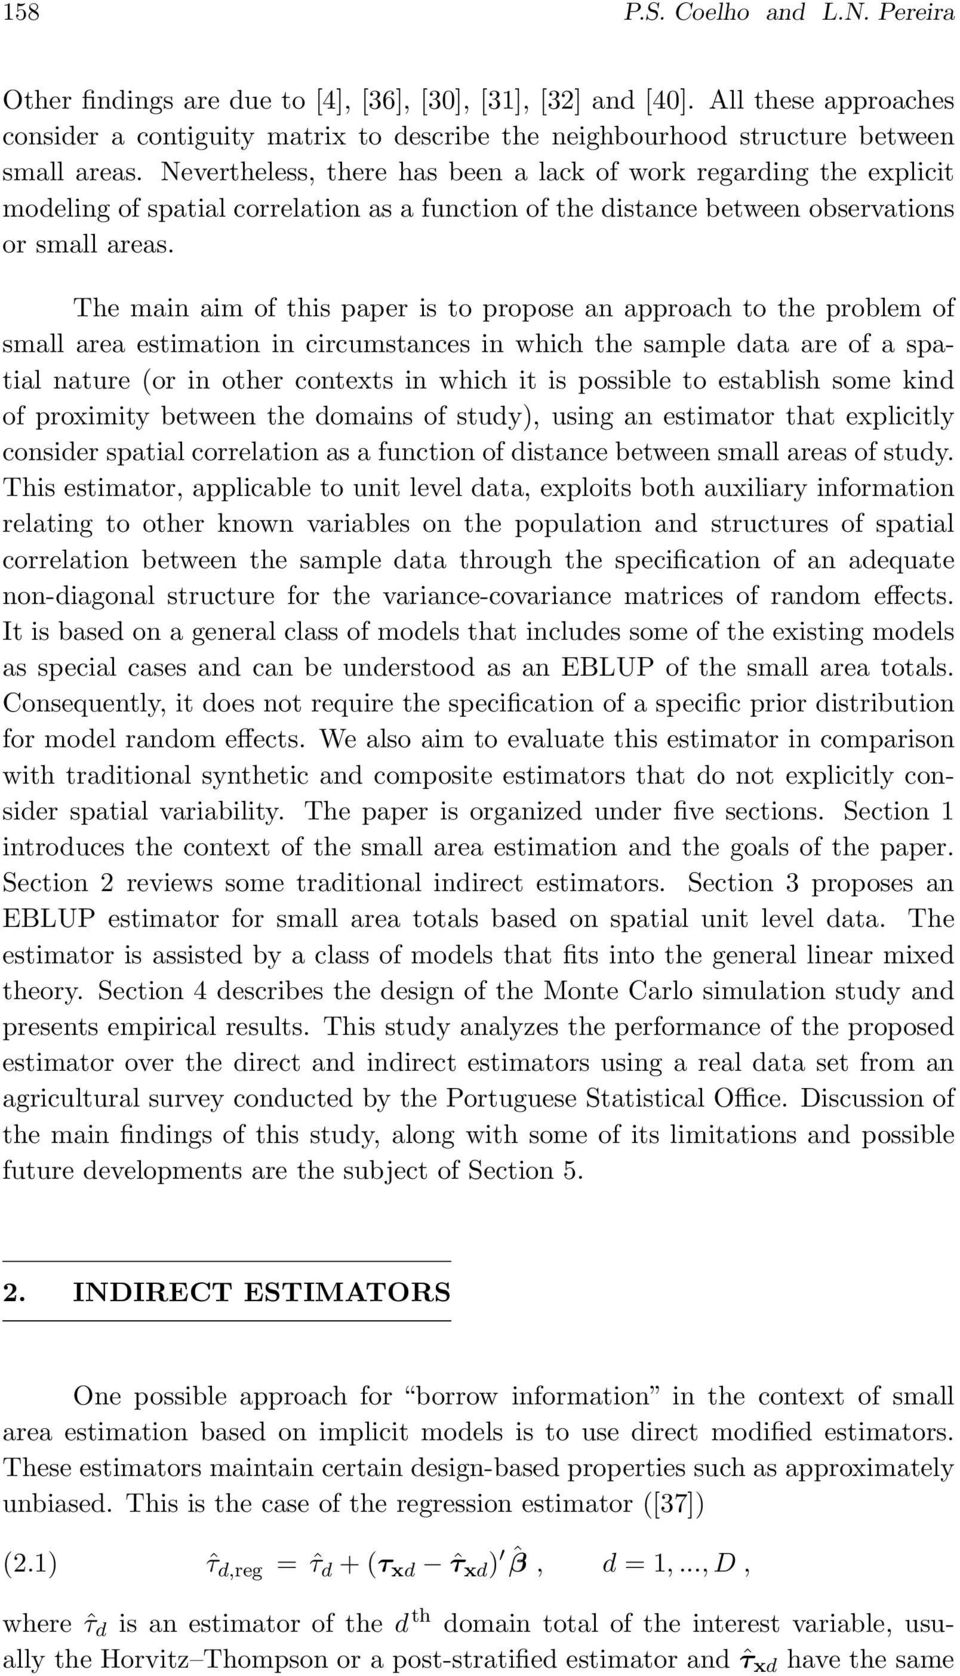 The main aim of this paper is to propose an approach to the problem of small area estimation in circumstances in which the sample ata are of a spatial nature (or in other contexts in which it is